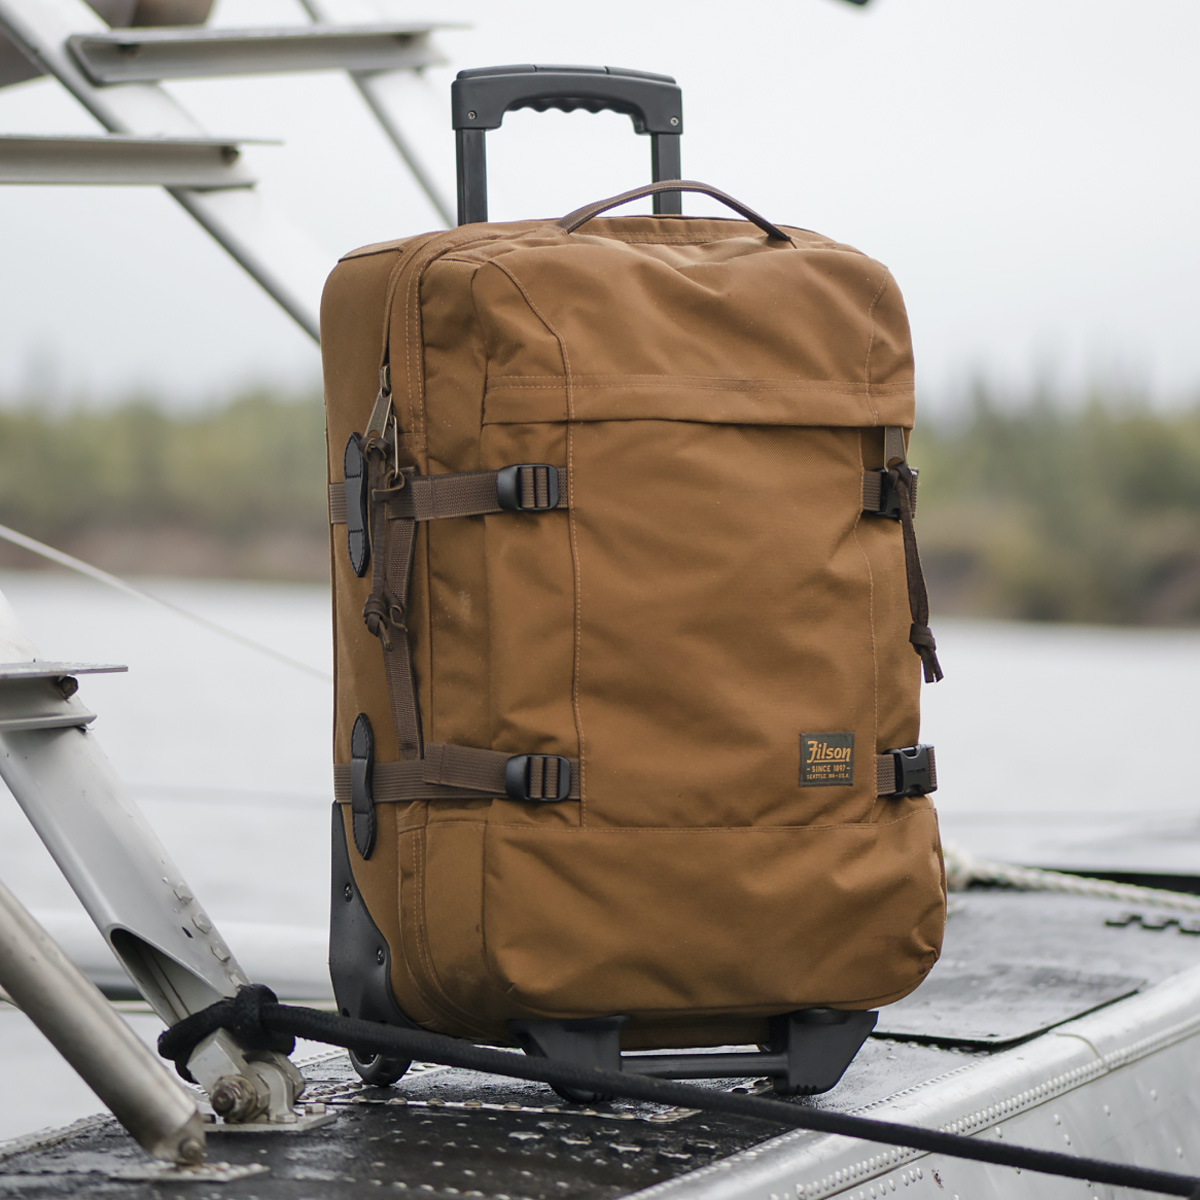 Filson Dryden Dryden 2-Wheel Rolling Carry-On Bag 20047728-Whiskey, built with abrasion-resistant ballistic nylon for years of reliable travel